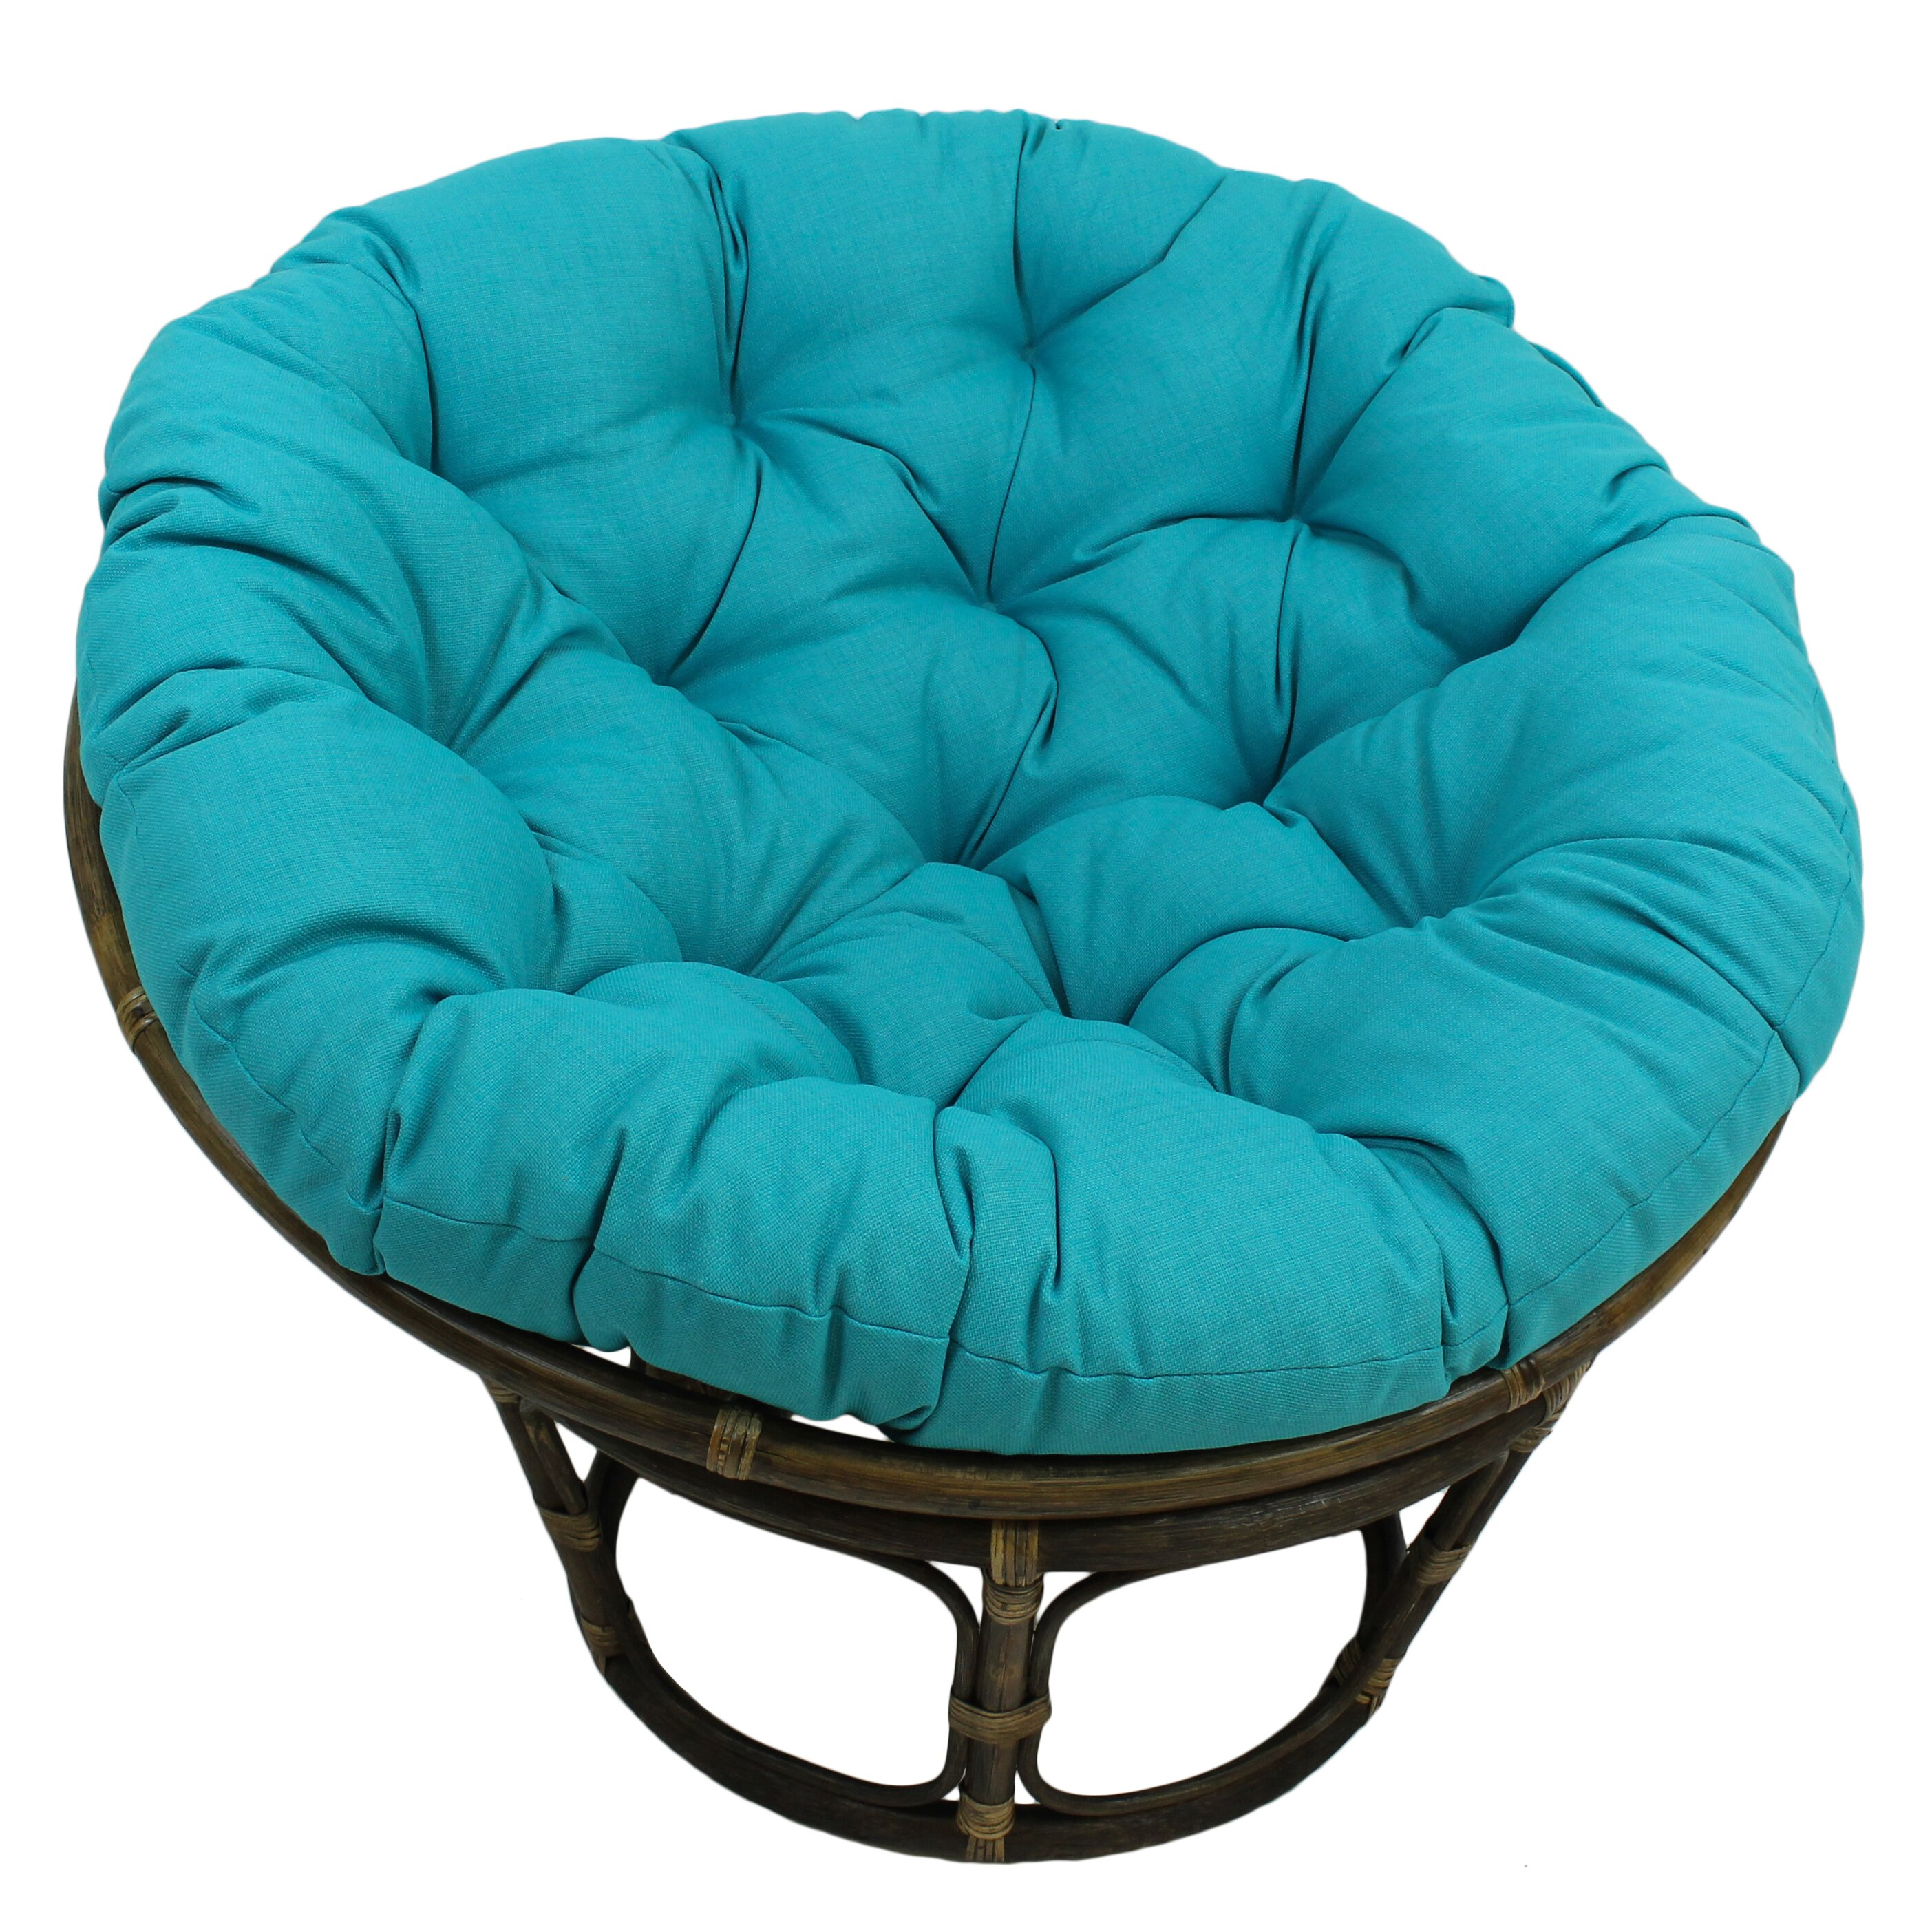 Bungalow Rose Benahid Outdoor Rattan Papasan Chair with